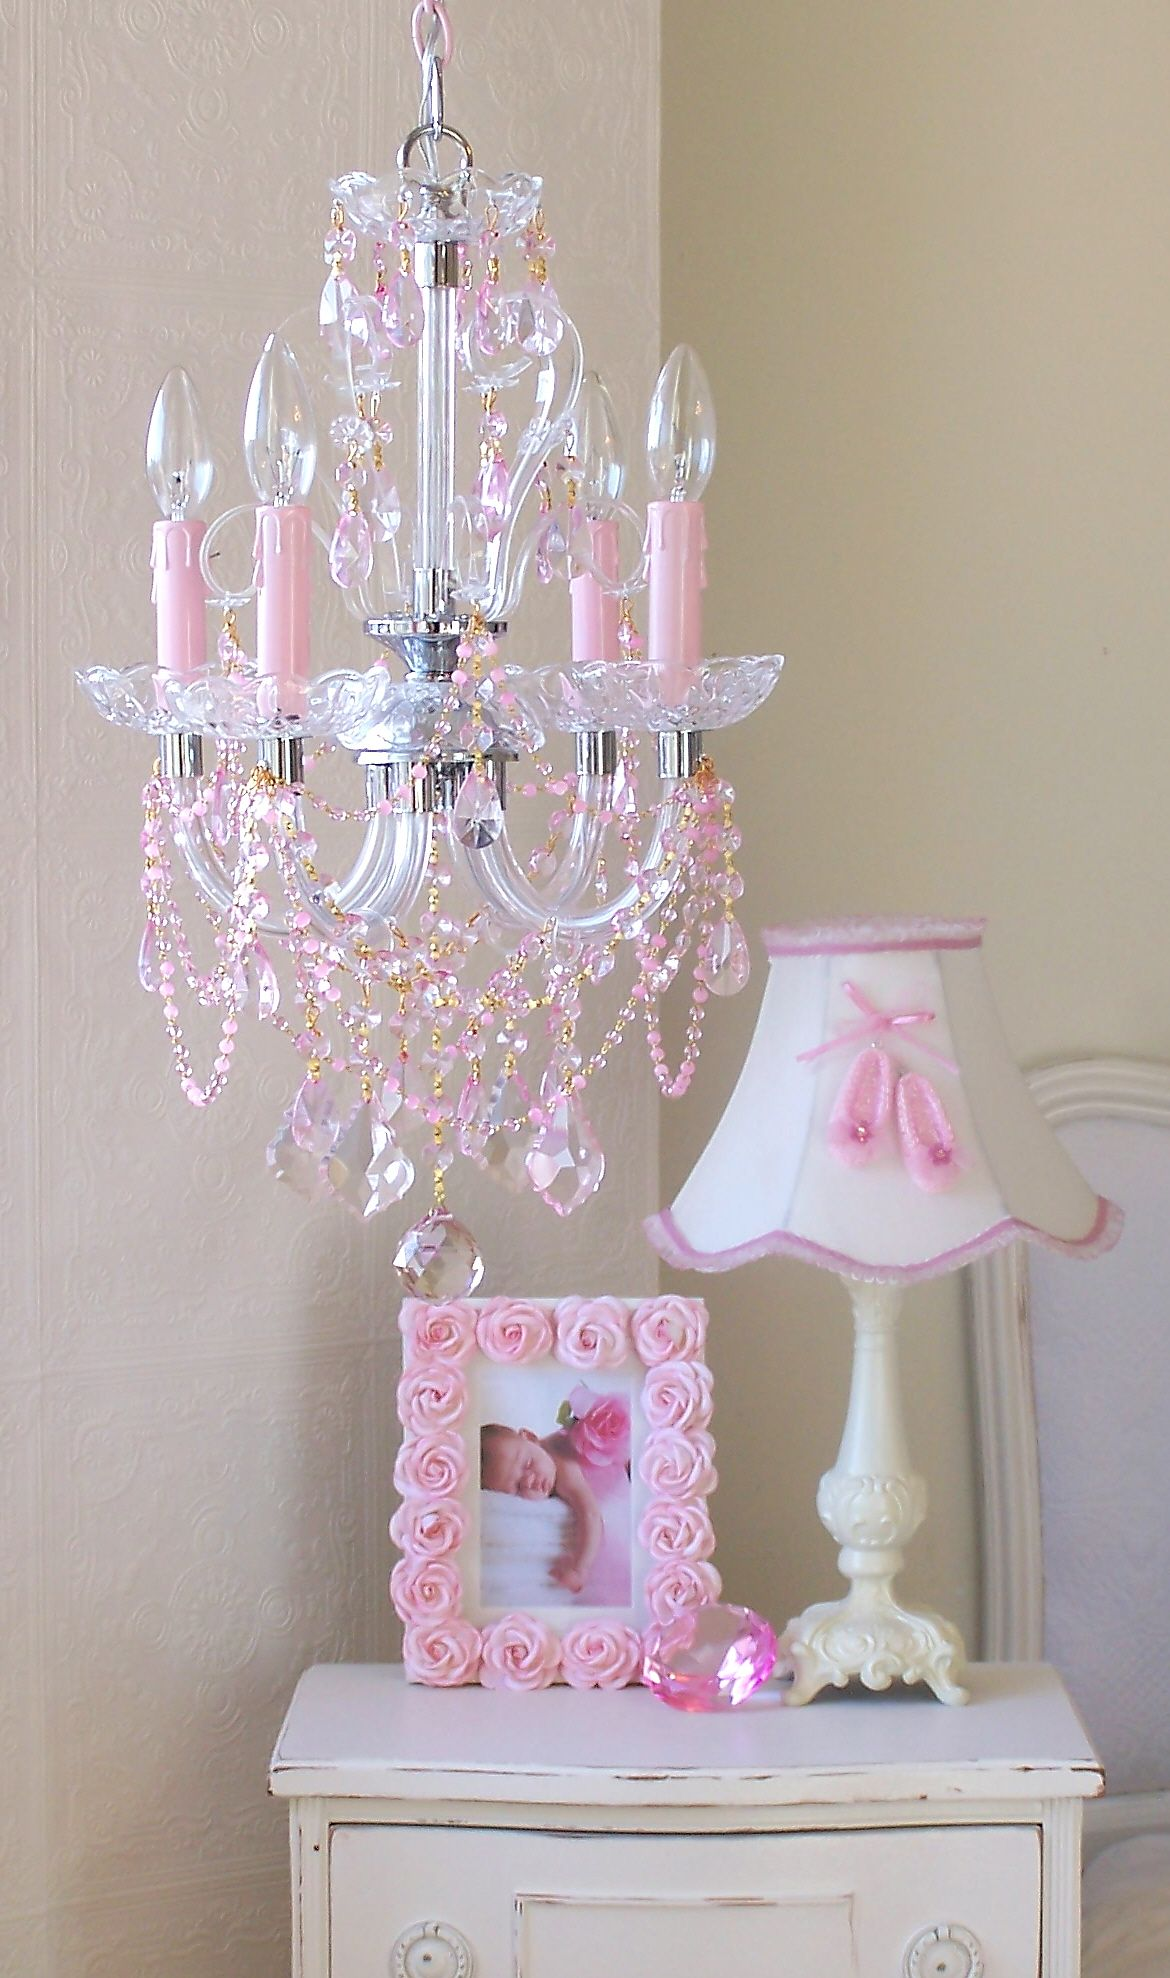 4 Light Beaded Pink Crystal Chandelier By A Vintage Light Pink Crystal Chandelier Pink Chandelier Baby Girl Room Chandelier for girls room